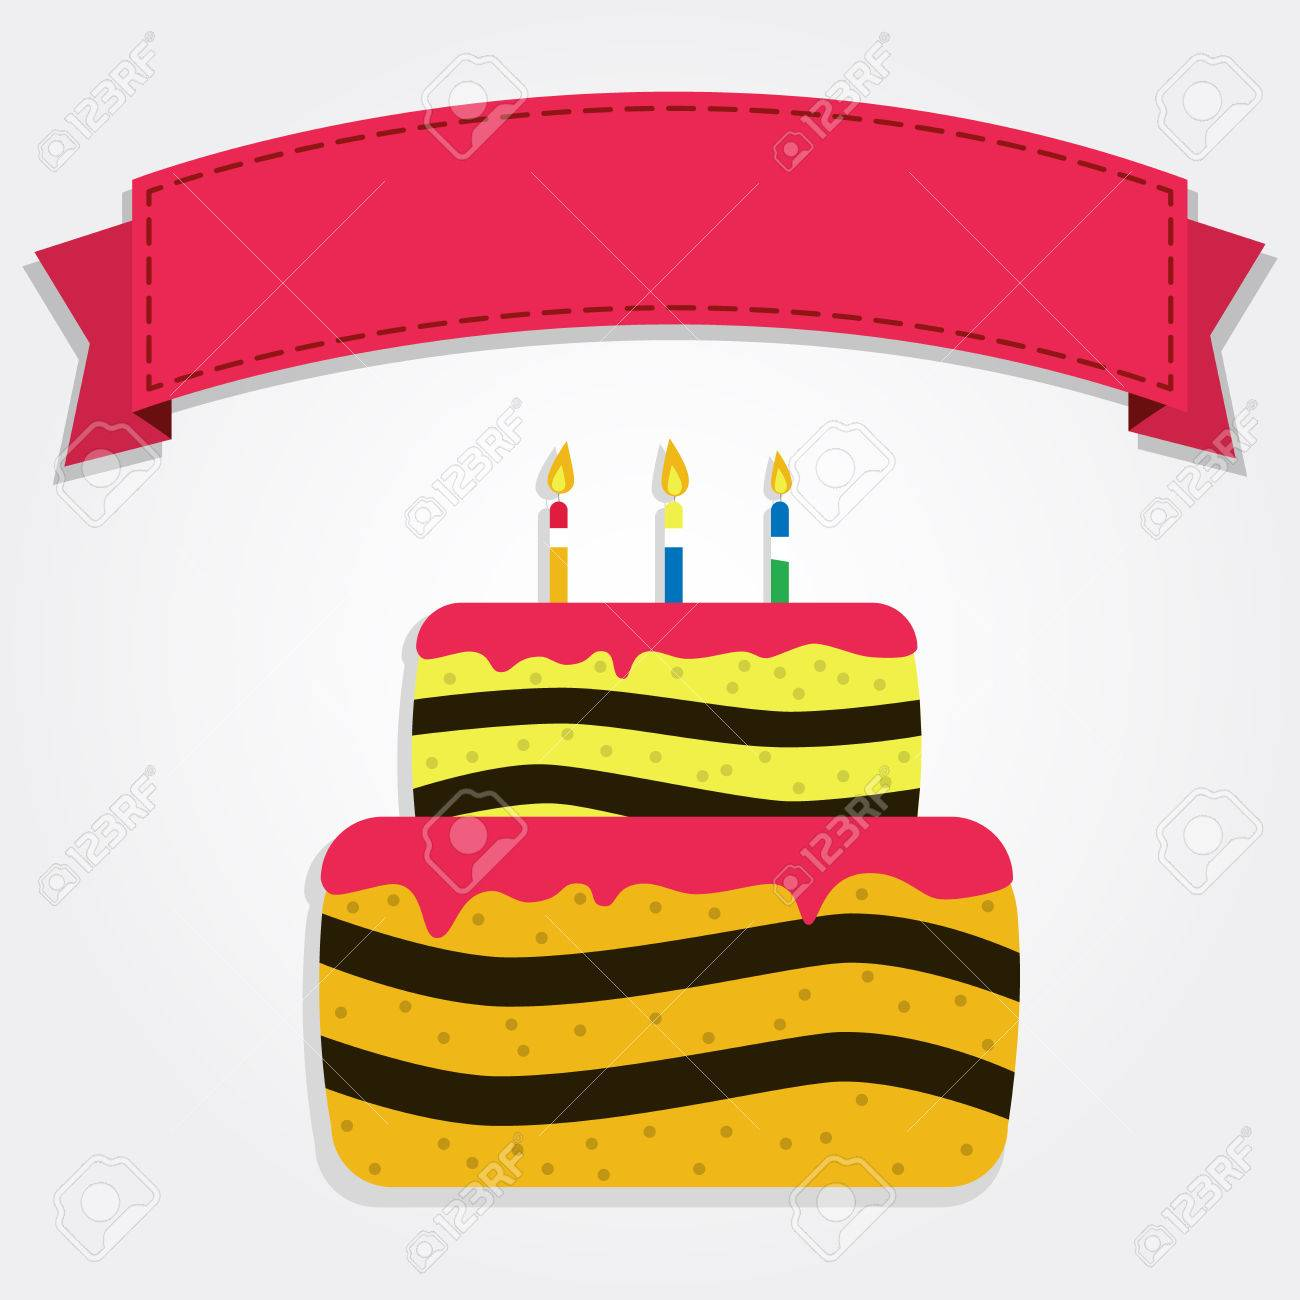 happy birthday banner decorated with a colorful cake red ribbon on cake happy birthday banner